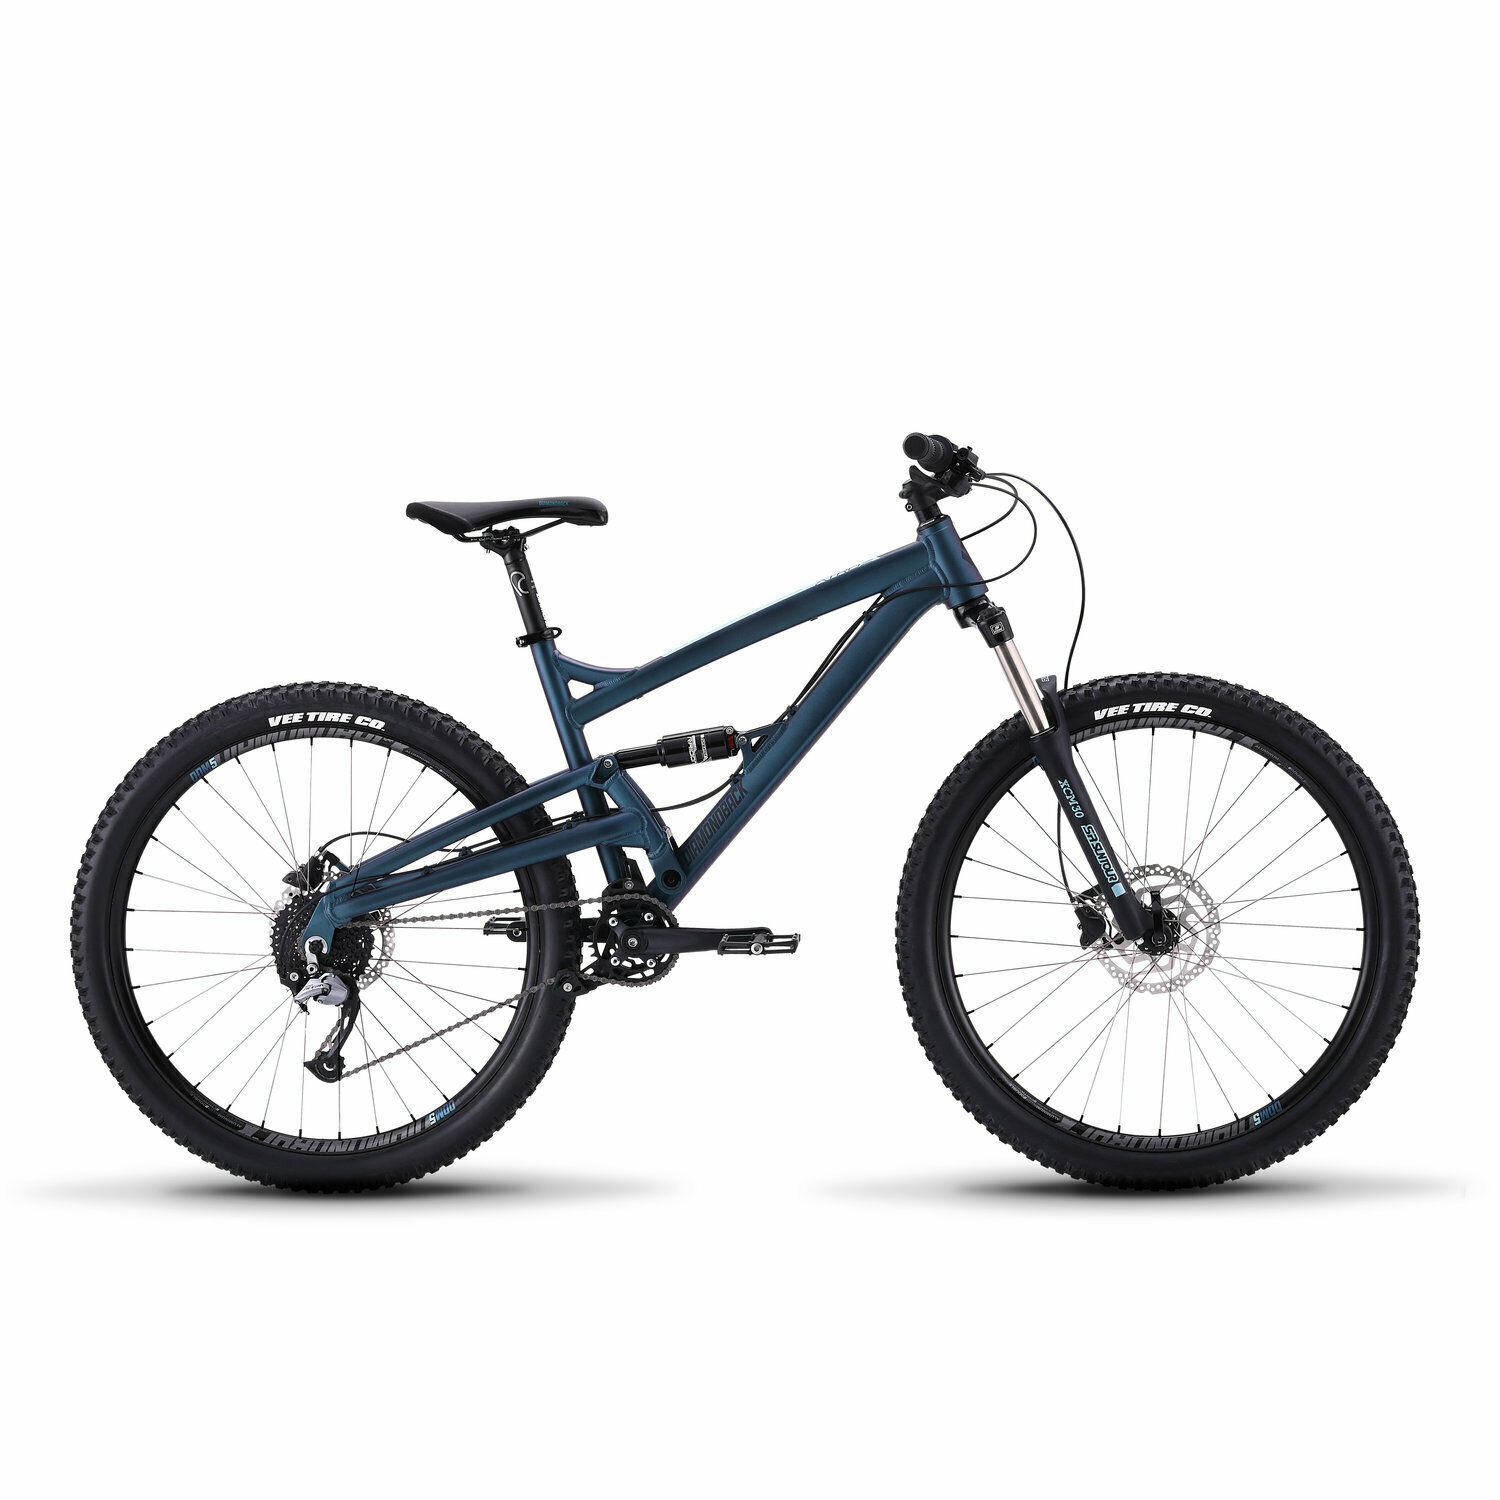 New 2019 Diamondback Atroz 2, Hydraulic Disc Brakes, Dual Suspension-SM, MD, LG